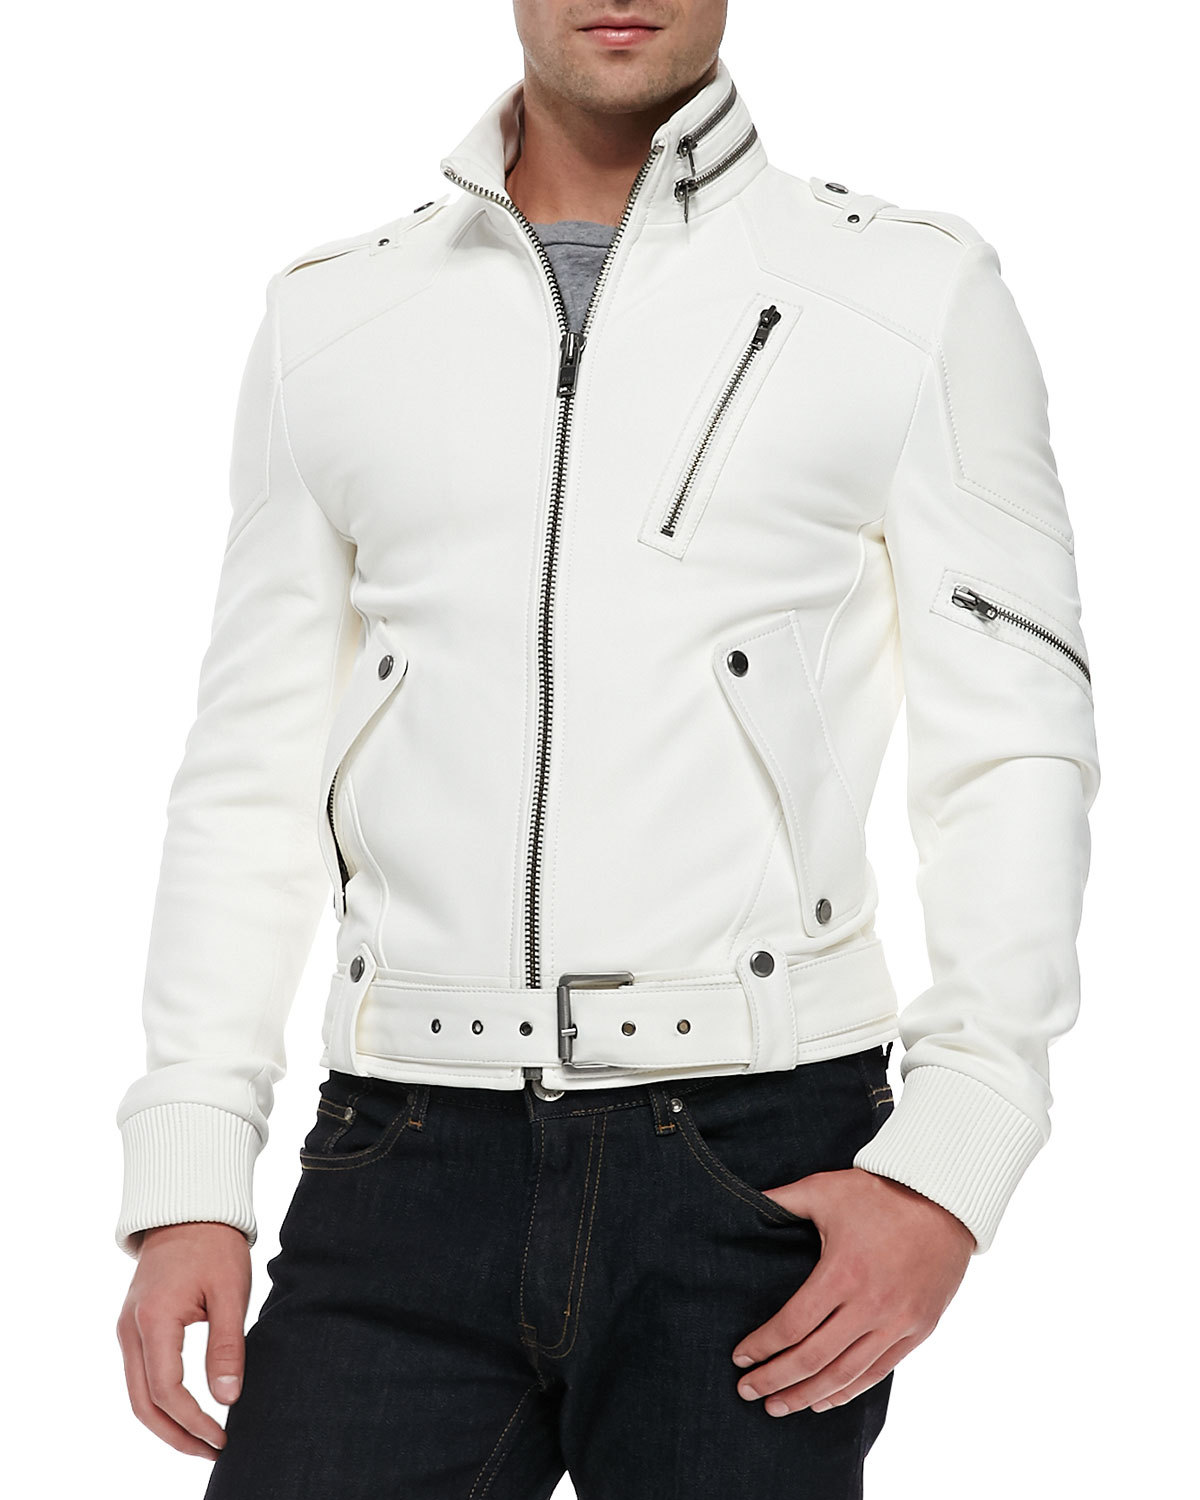 Find white leather jackets for men at ShopStyle. Shop the latest collection of white leather jackets for men from the most popular stores - all in one Black White Leather Jacket Men Mens Cream Leather Jacket Get a Sale Alert Pre-Owned at TheRealReal Christian Dior Leather Moto Jacket $1, $2, Get a Sale Alert Extra 40% Off.